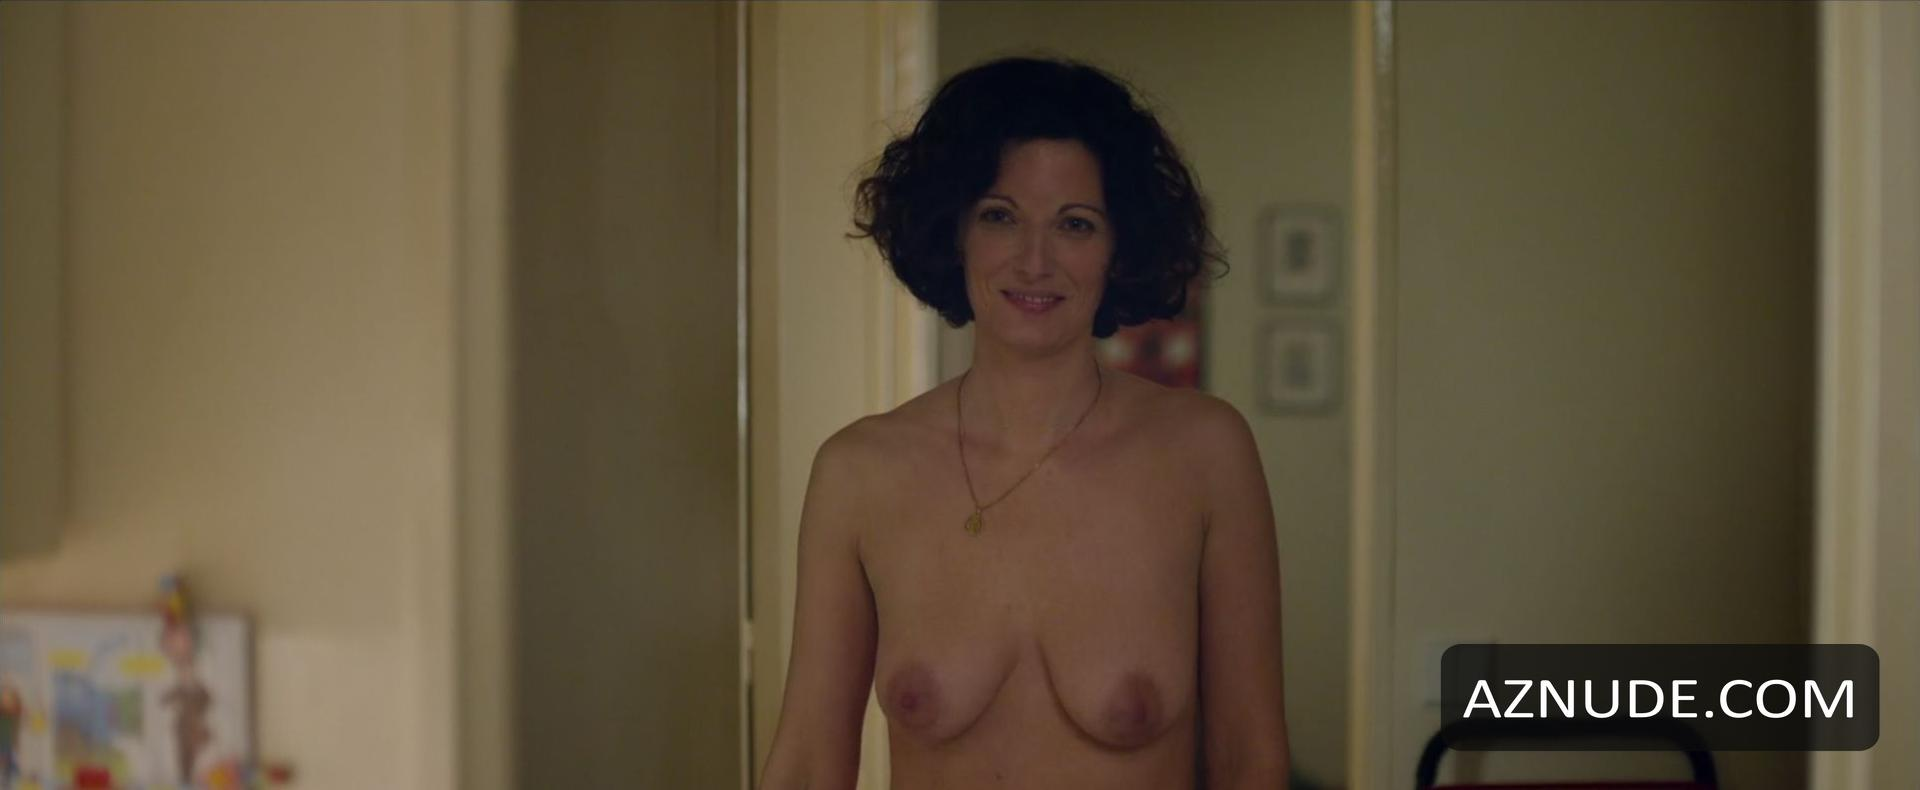 Female movie stars in the nude